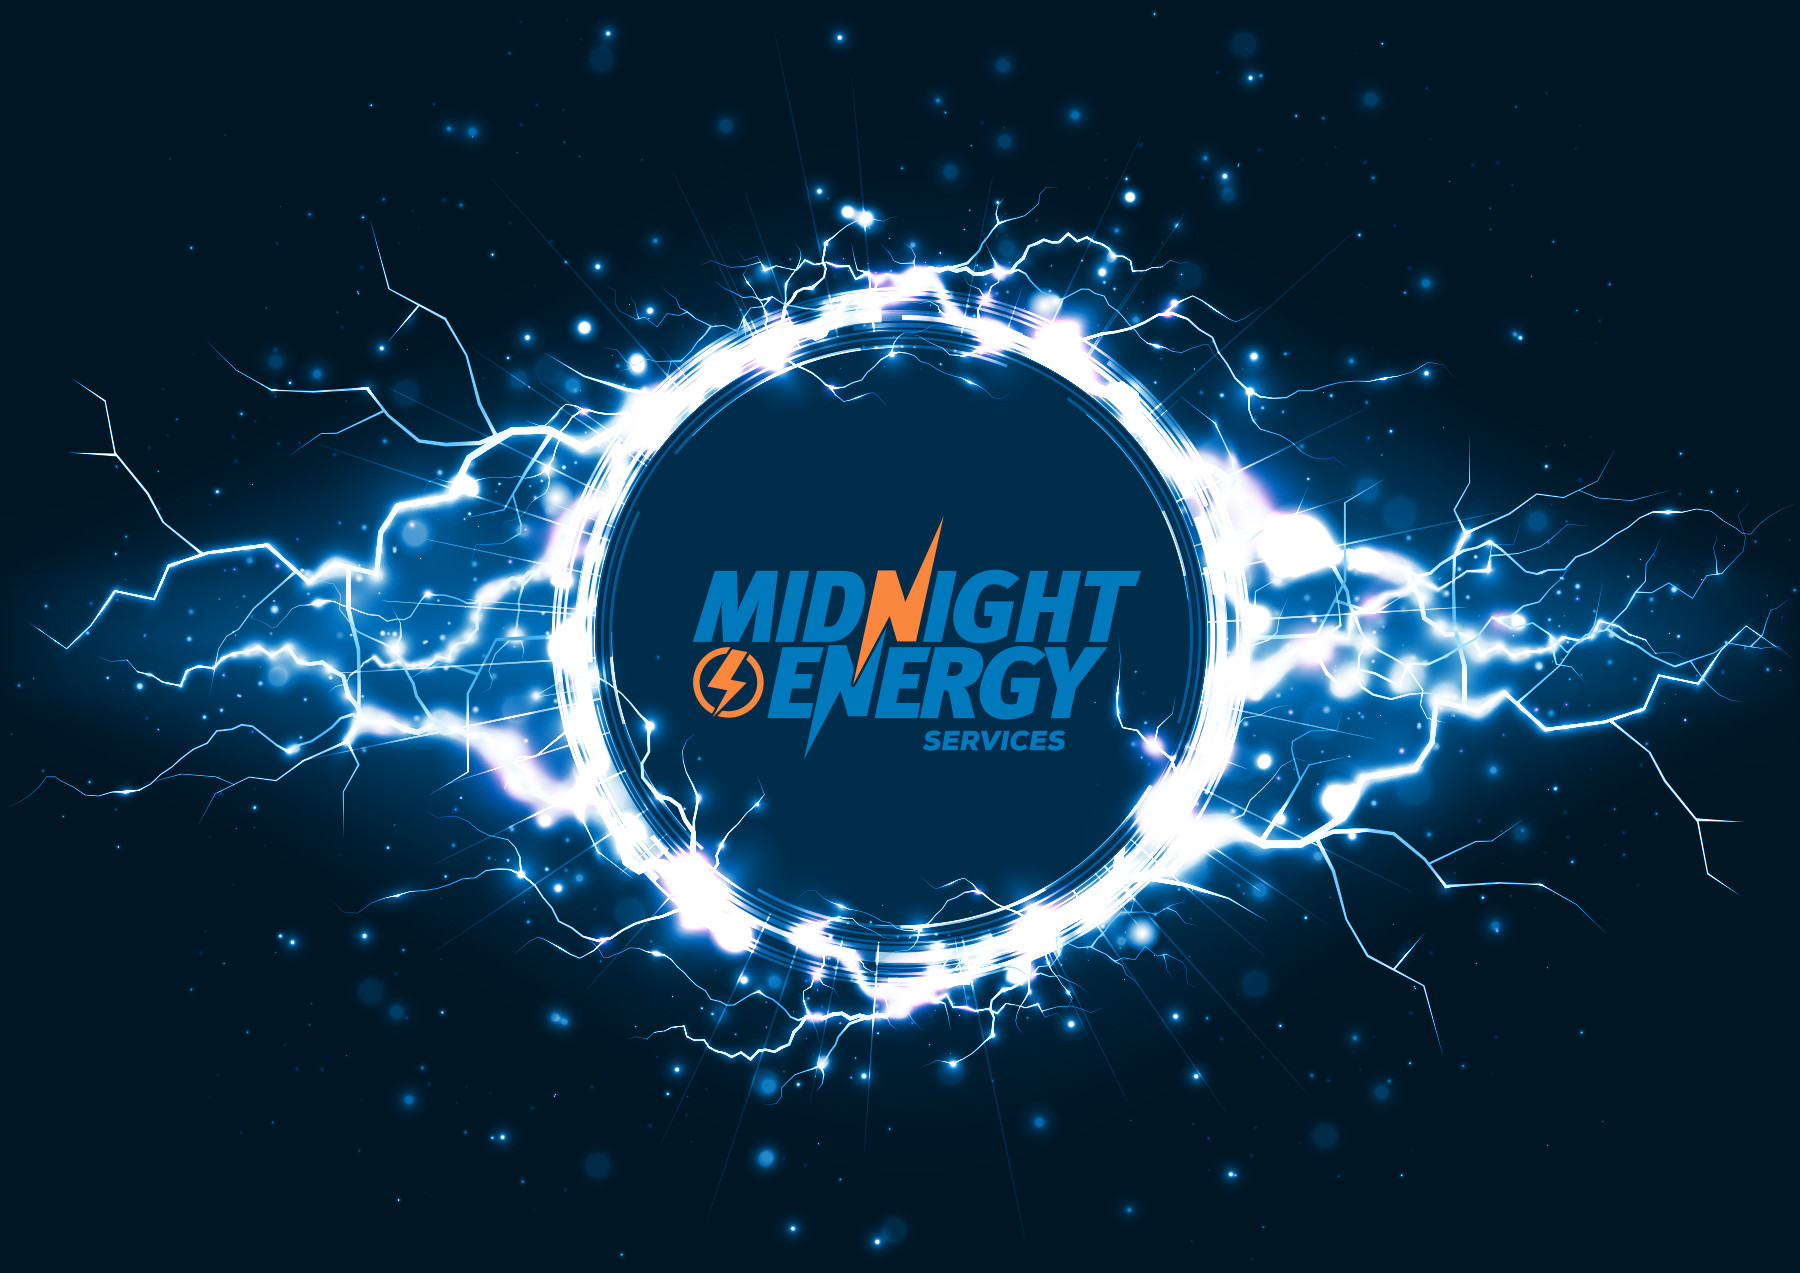 Full Midnight Energy Services